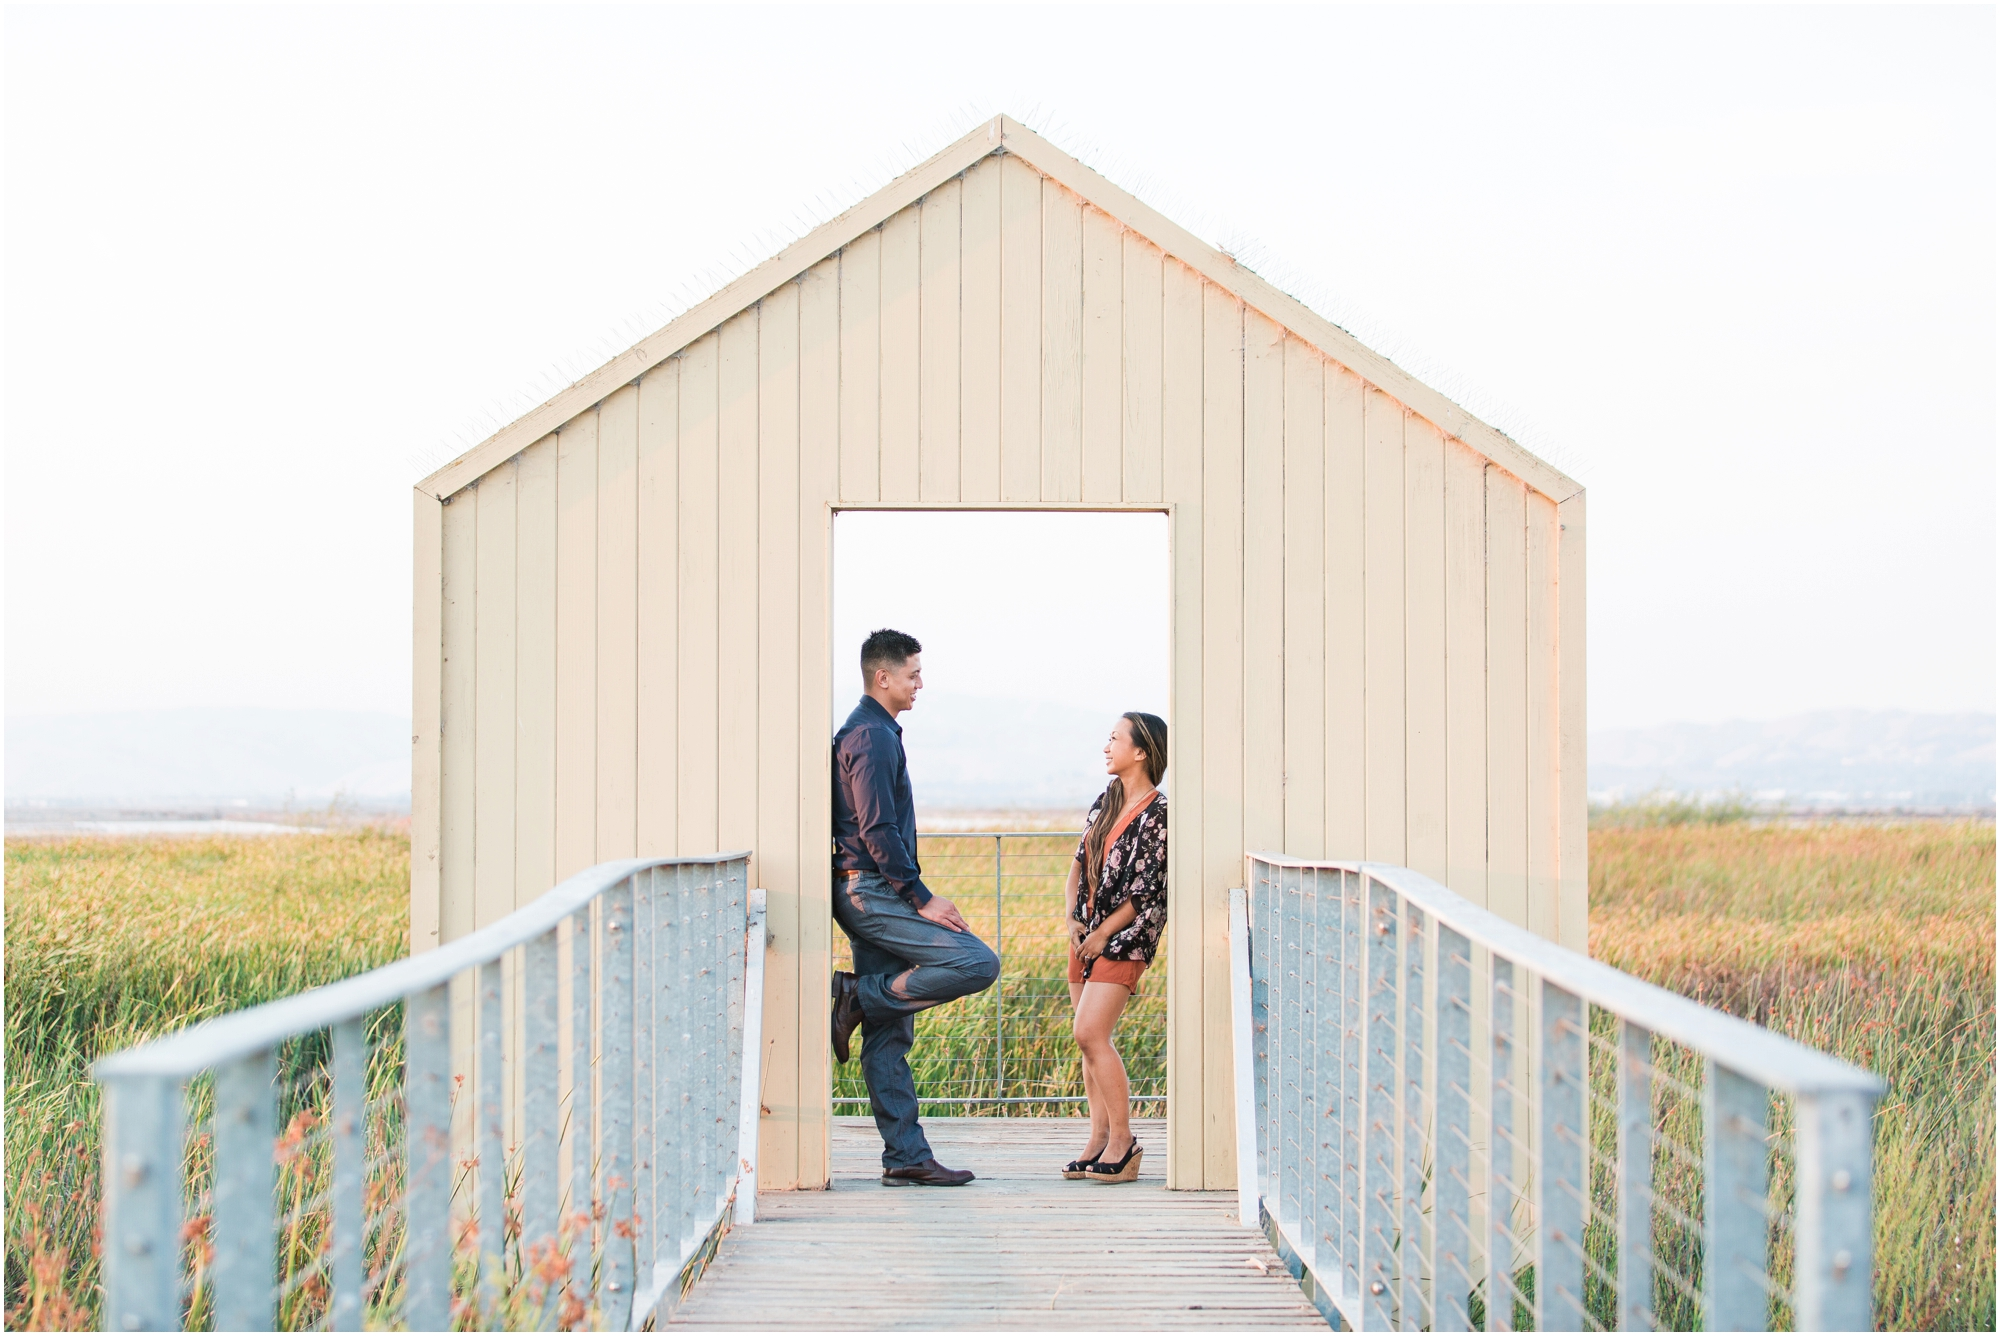 Willow Glan & Alviso Marina engagement pictures by Briana Calderon Photography_2122.jpg